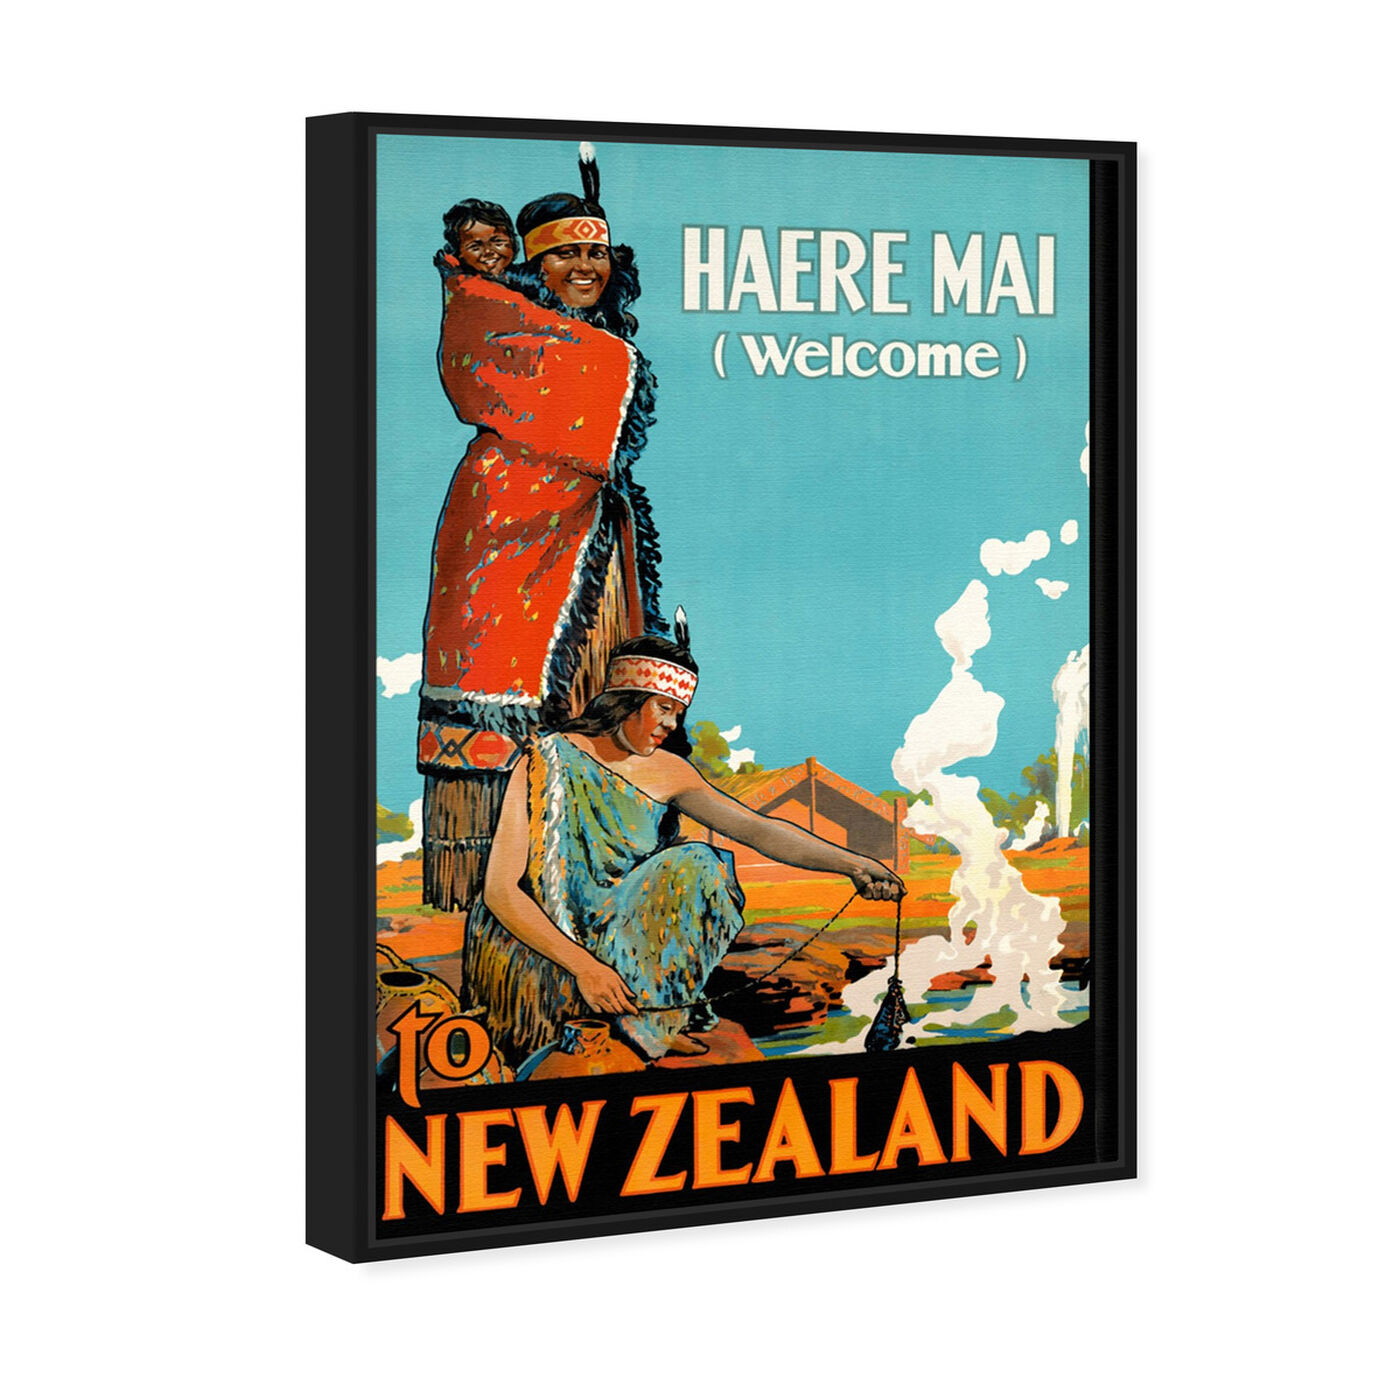 Angled view of New Zealand featuring advertising and posters art.